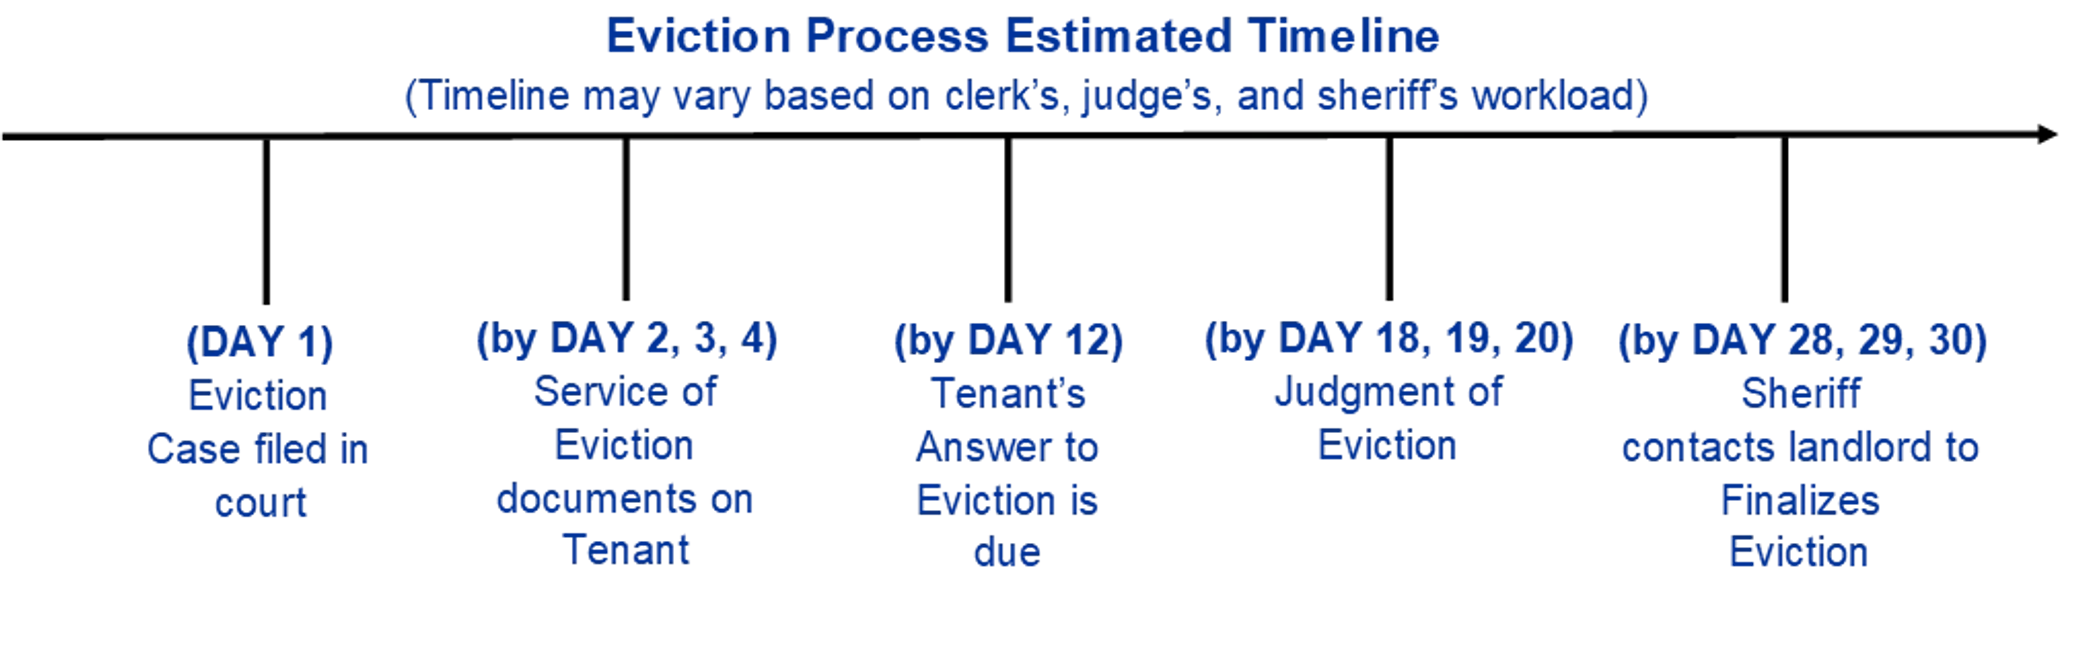 Eviction Process Timeline